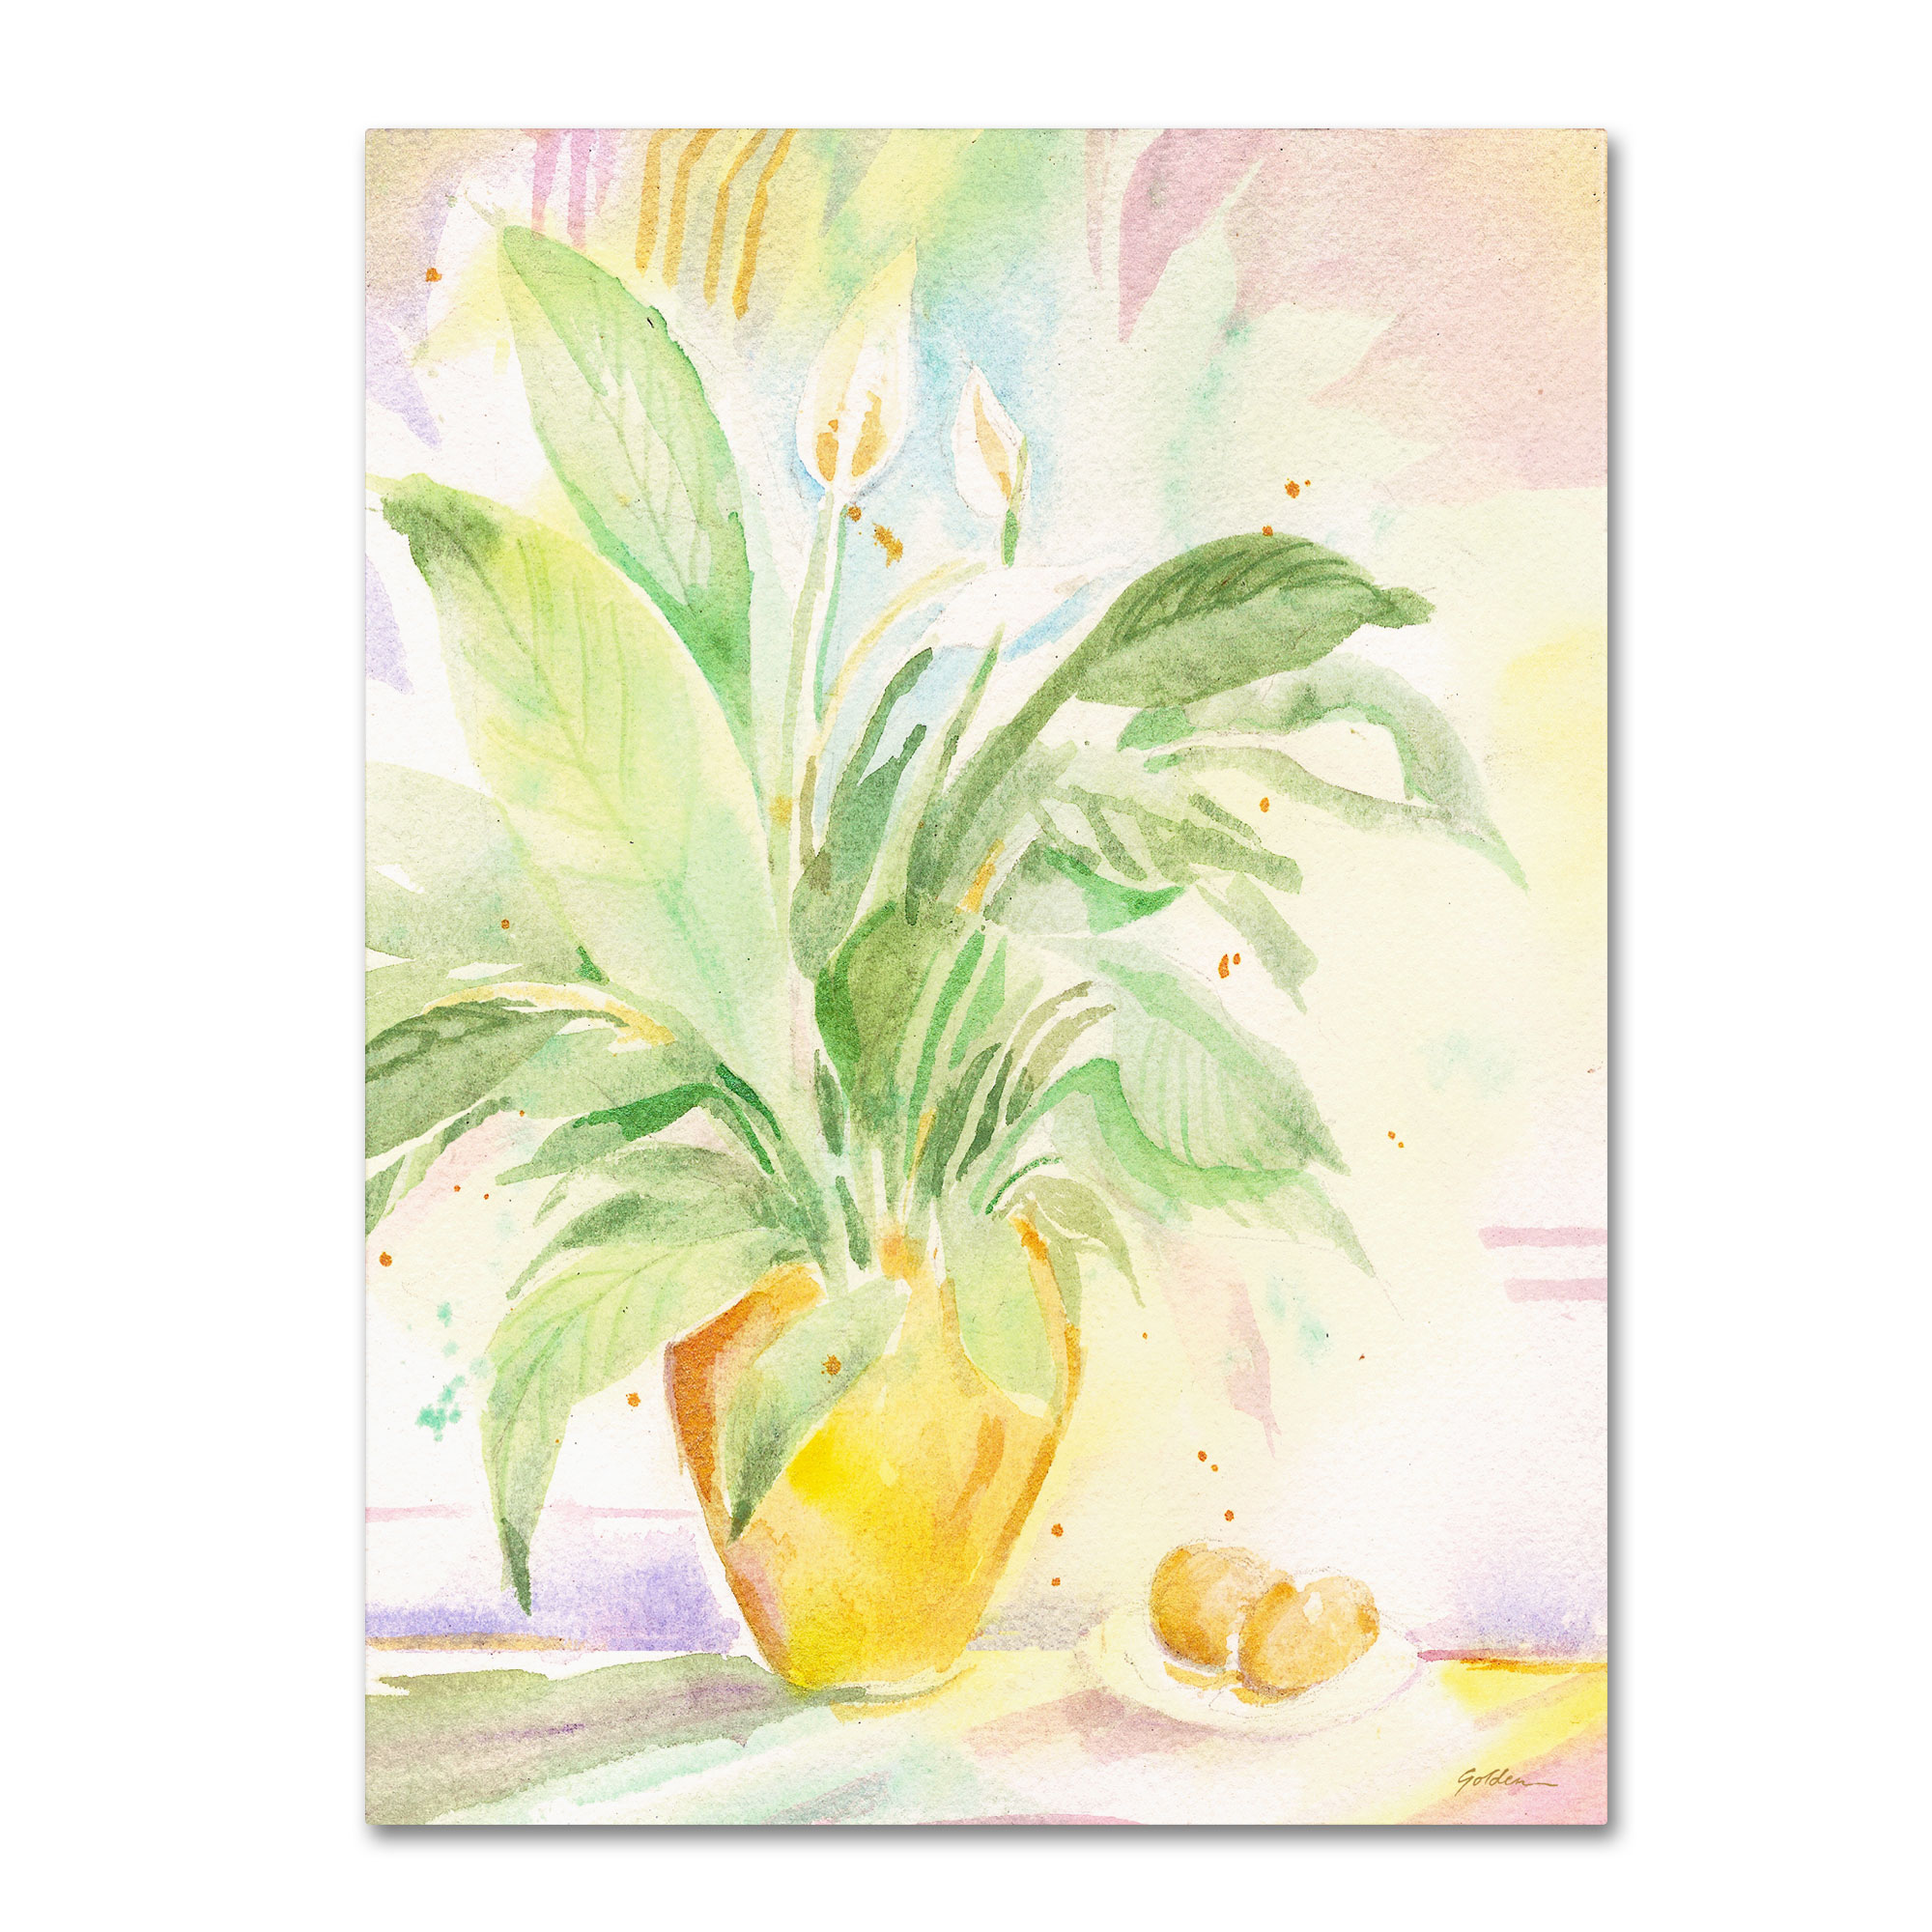 Trademark Fine Art Sheila Golden 'The Peace Lily' Canvas Art